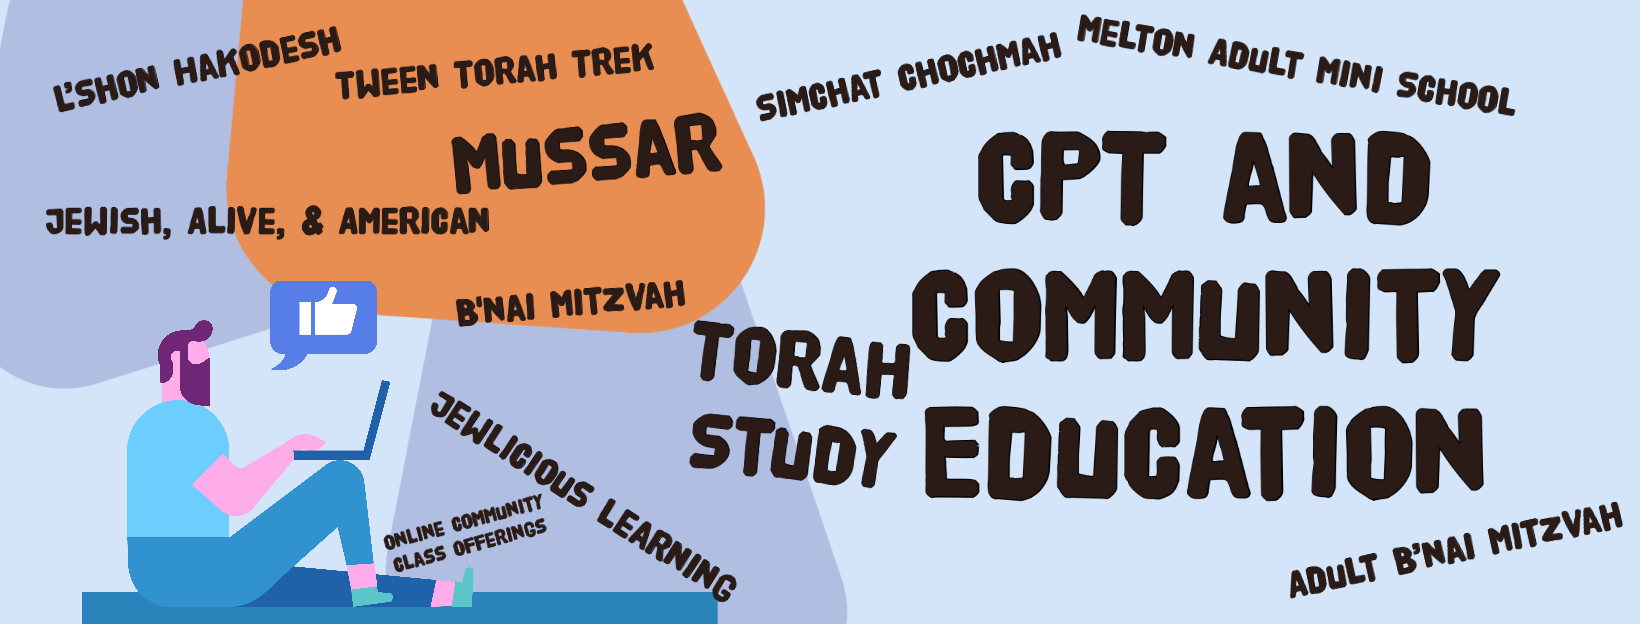 CPT and Community Education